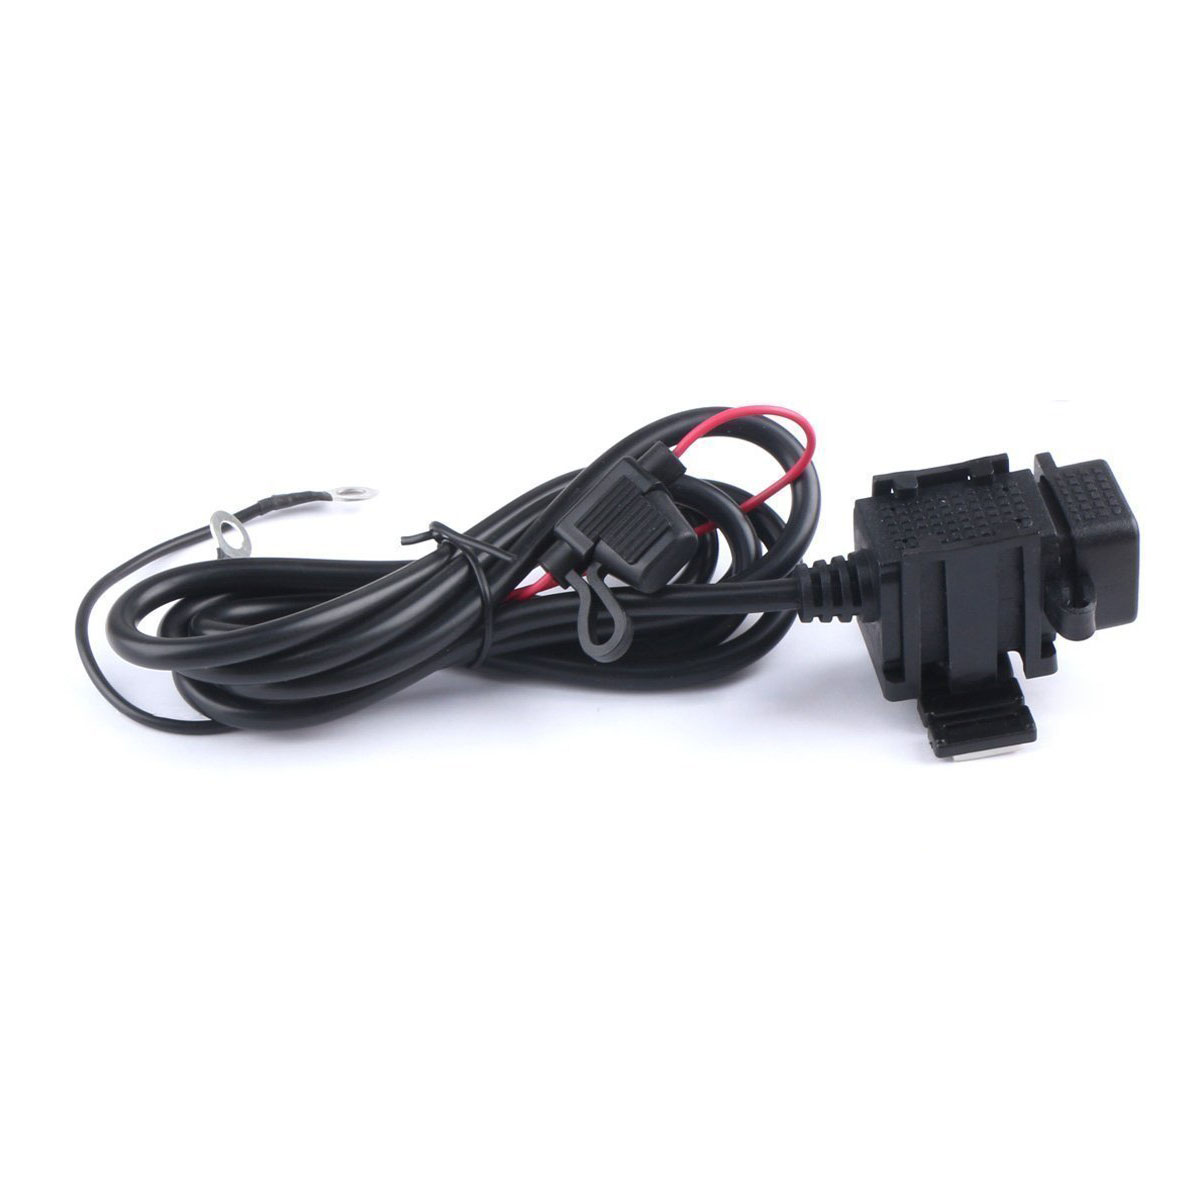 Waterproof Dual USB Charger Motorcycle Cell-Phone Charging Port 12V to 5V/2.1A Power Adapter top quality 12v 24v dual usb waterproof motorcycle 2 1a dual usb charging cable to sae phone charger power adapter outlet parts